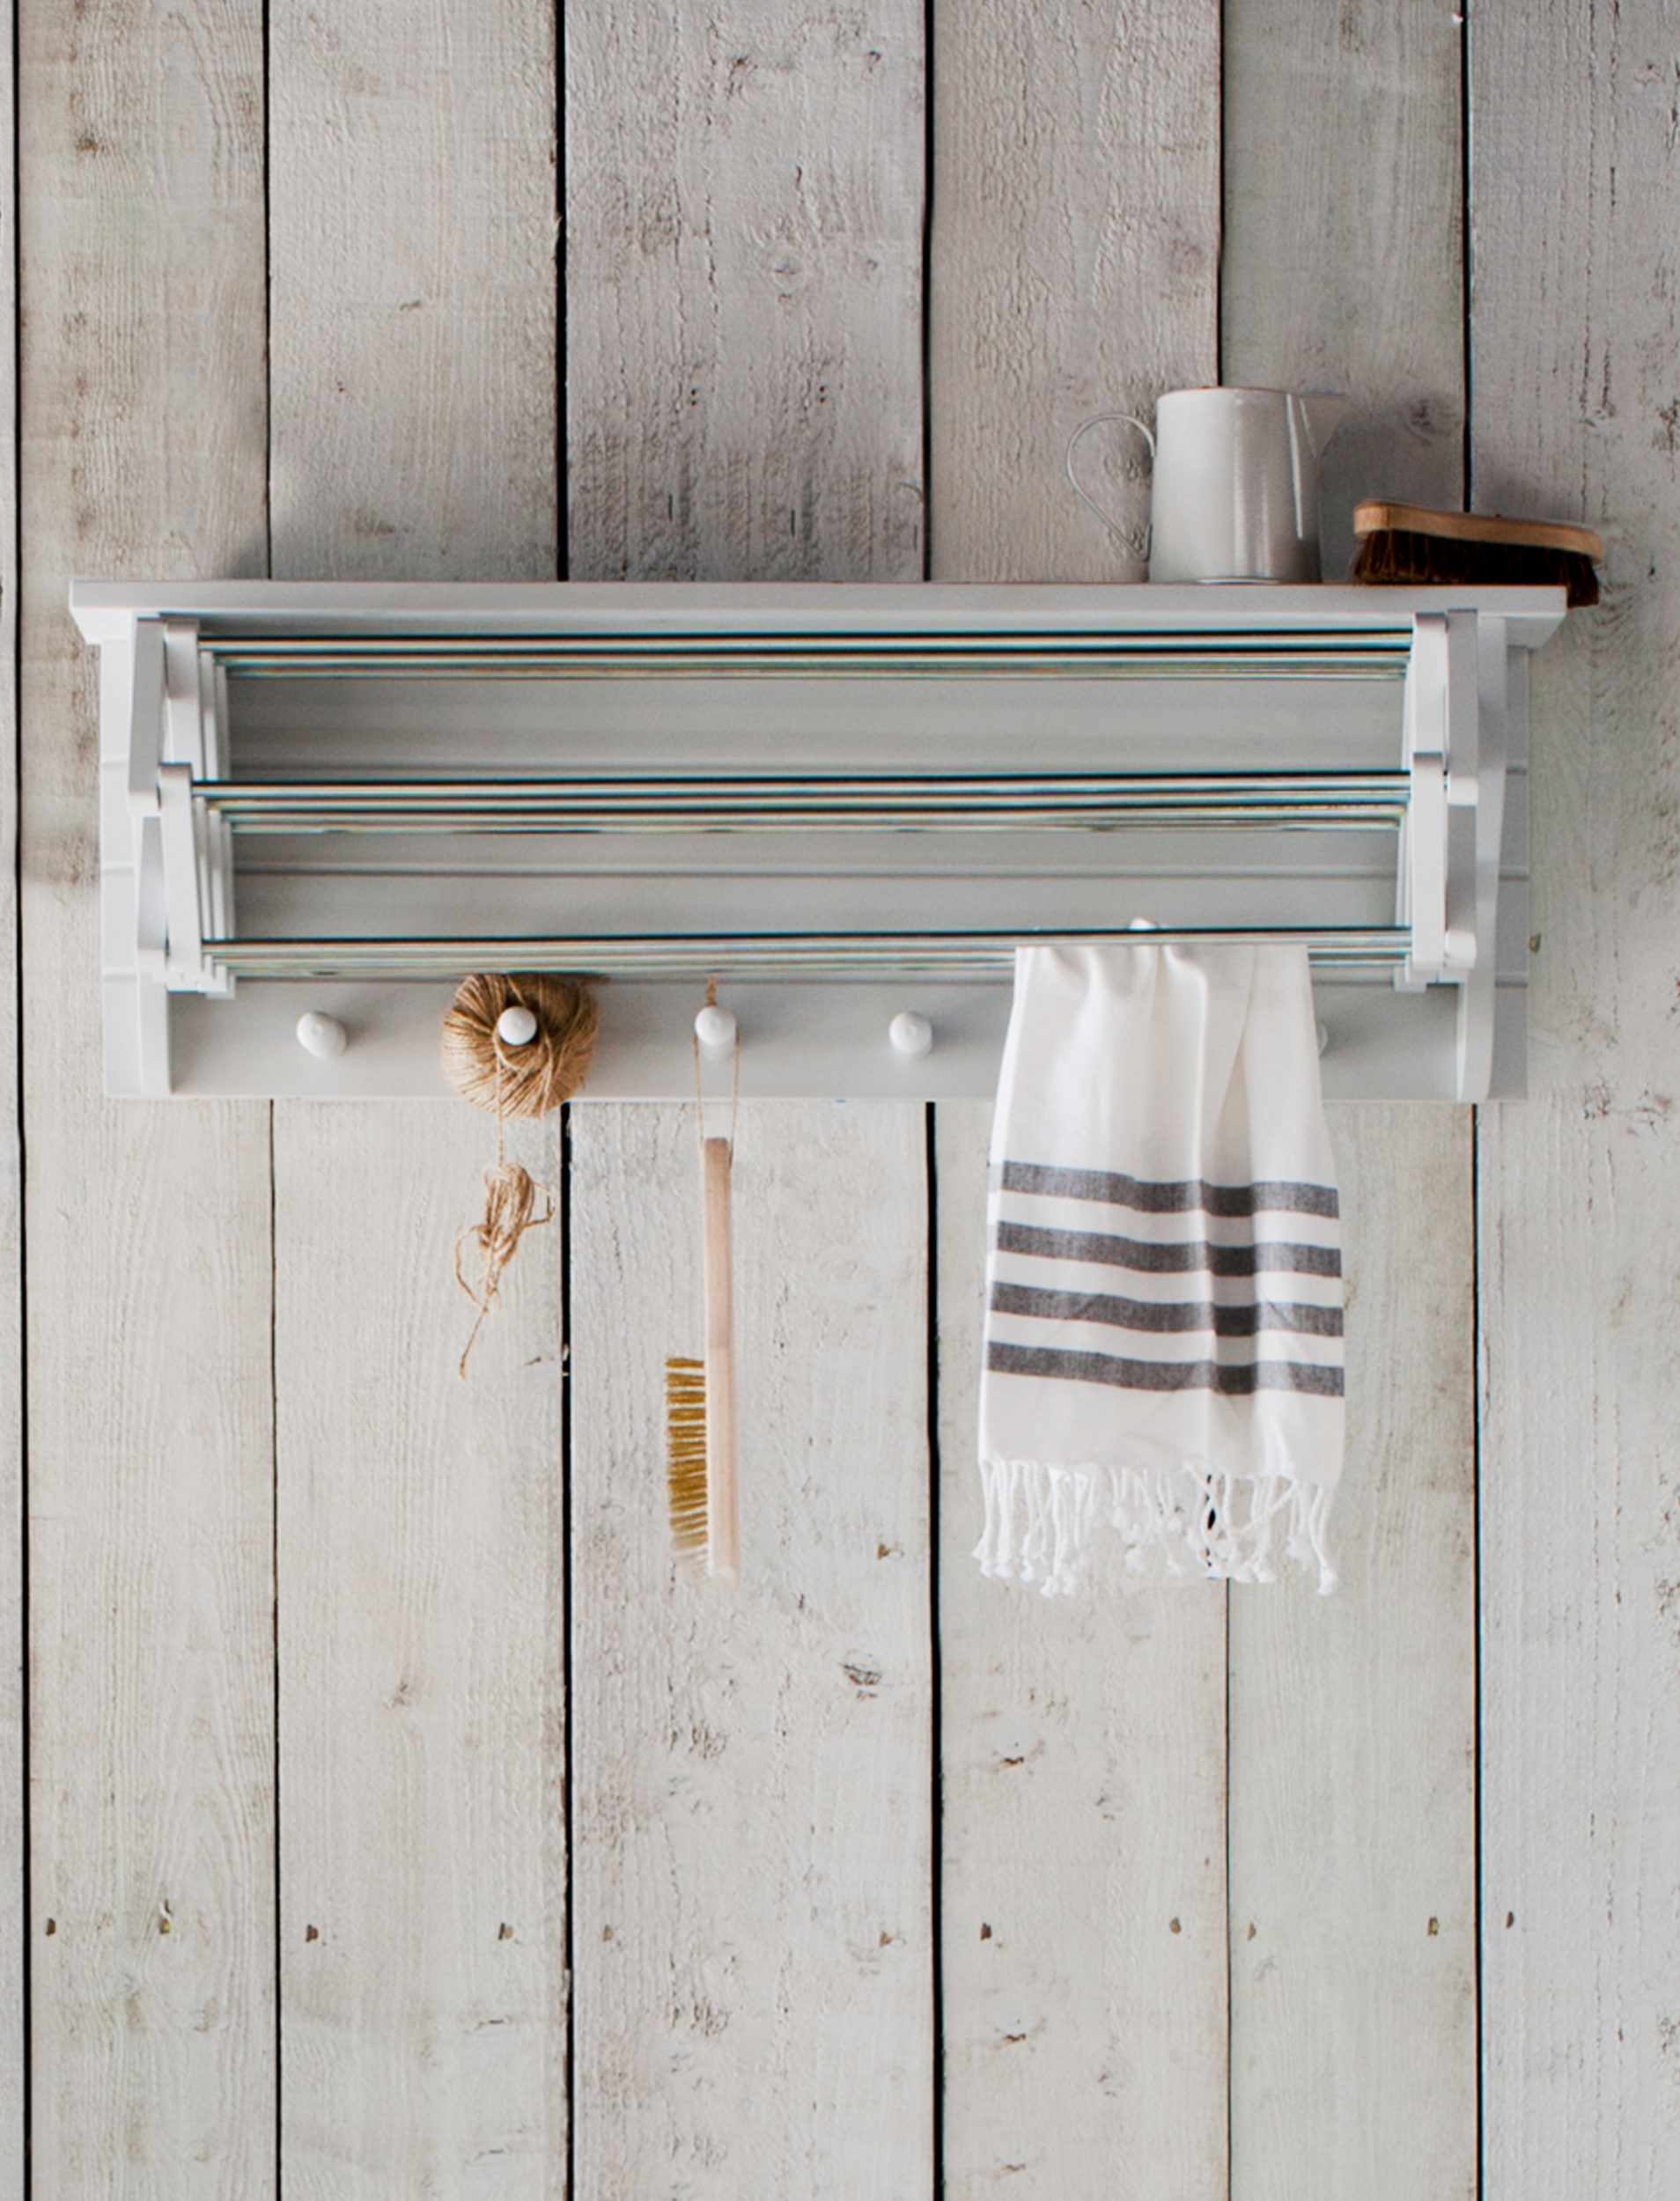 Wooden Extending Clothes Dryer in White or Grey   Garden Trading